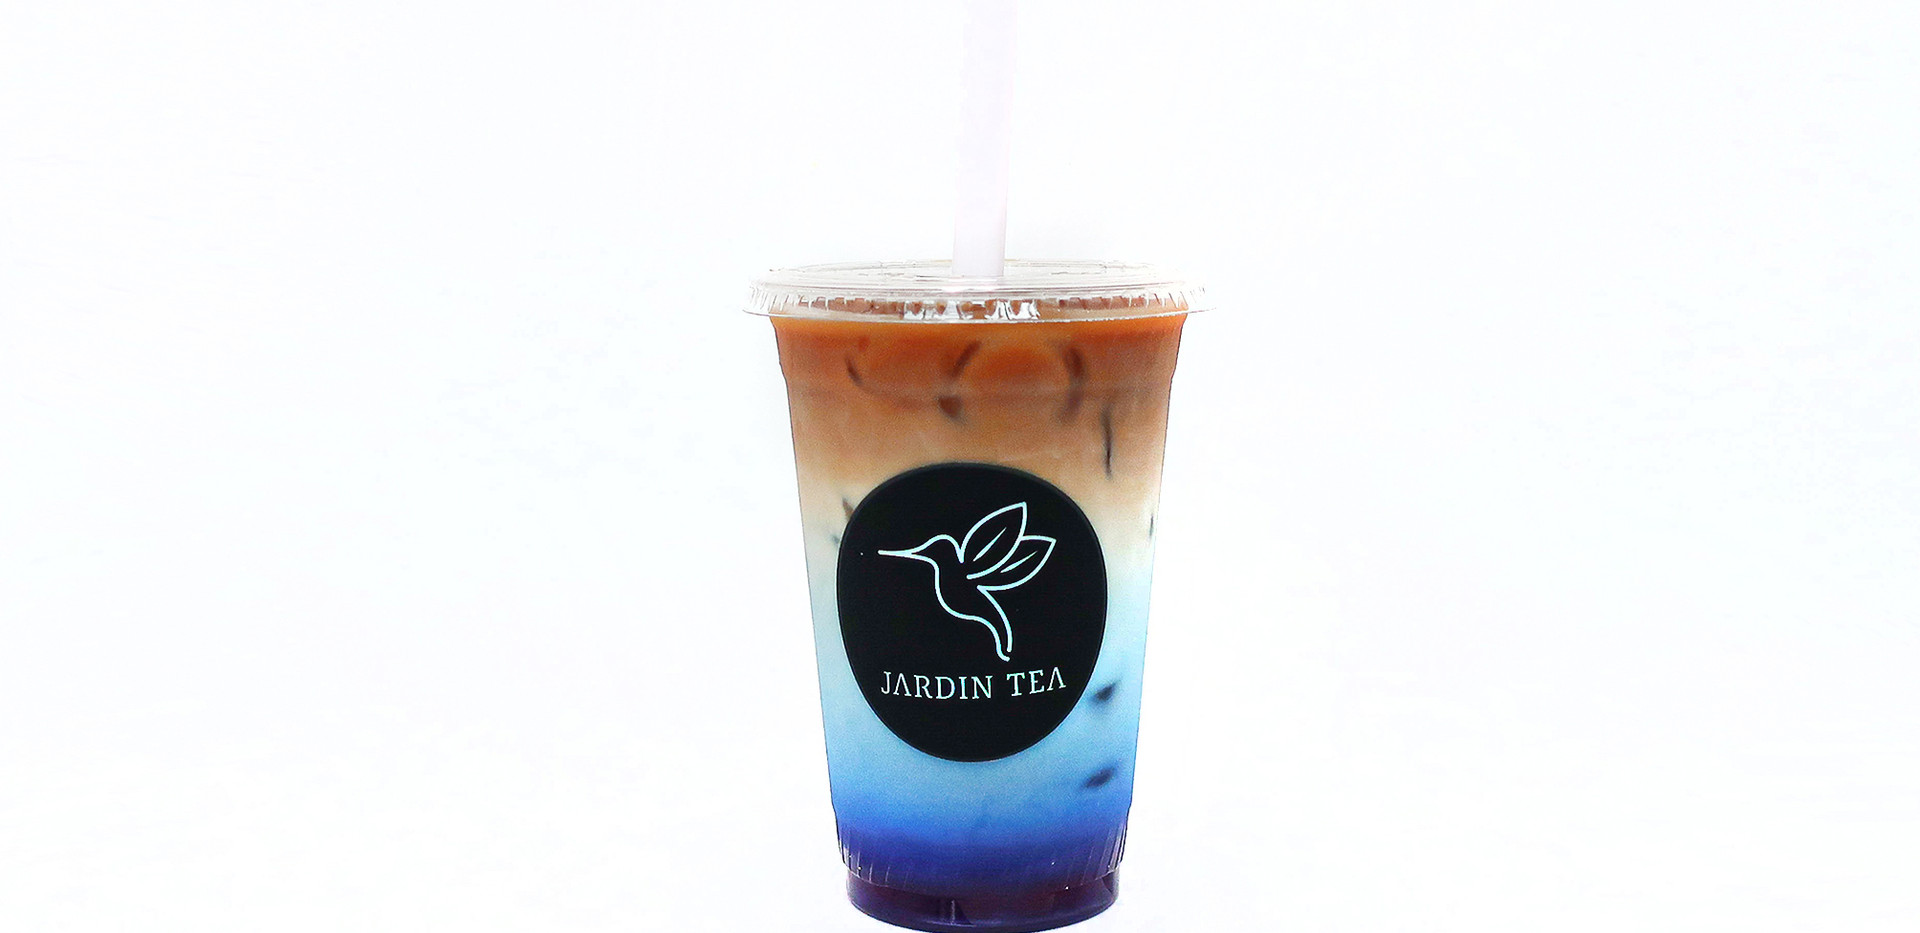 Butterfly Pea Flower Coffee Latte.jpg